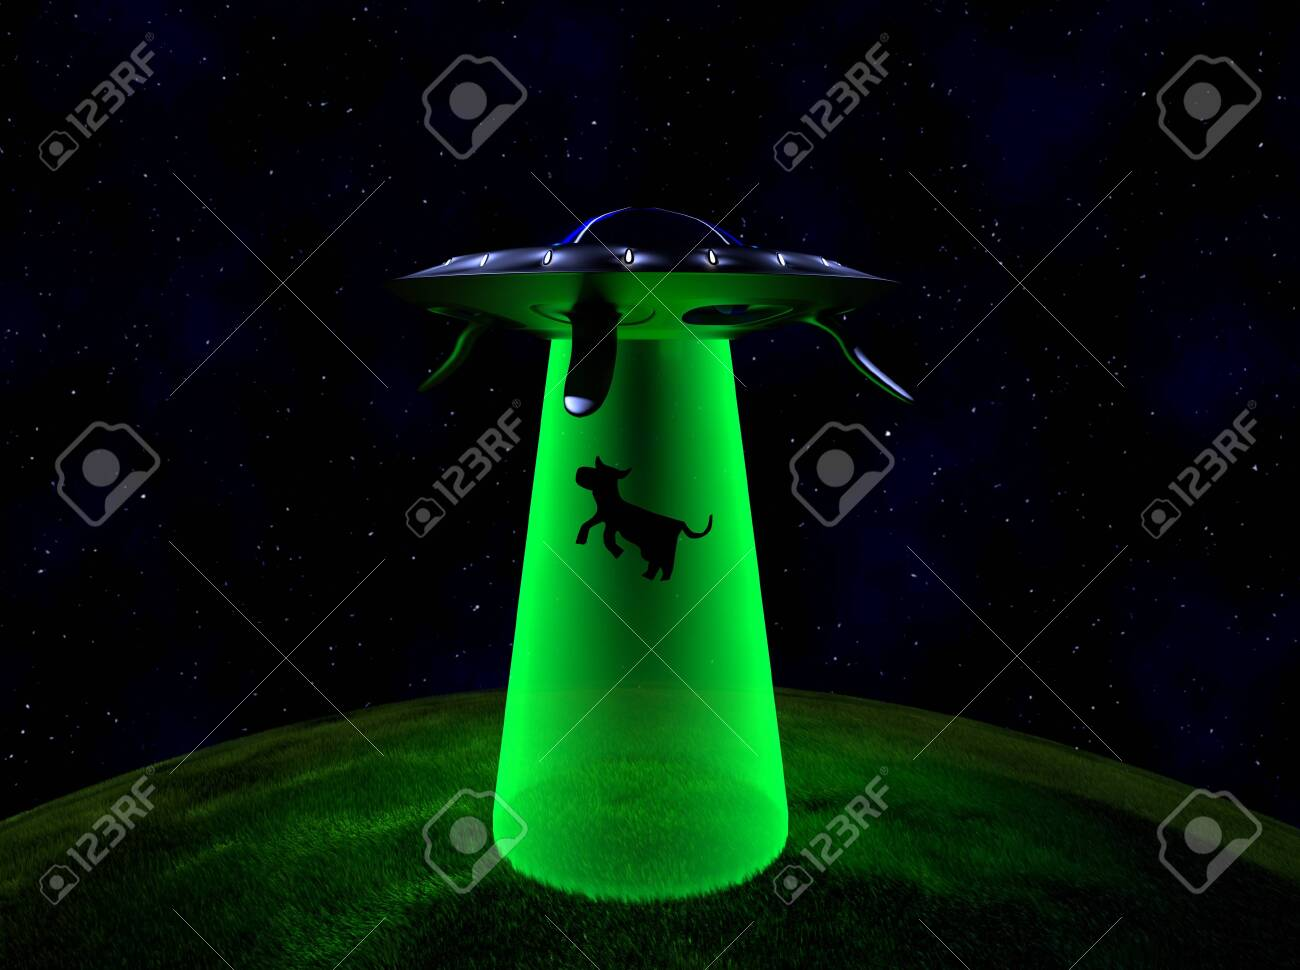 The UFO abduction in night,3d render. - 131122267